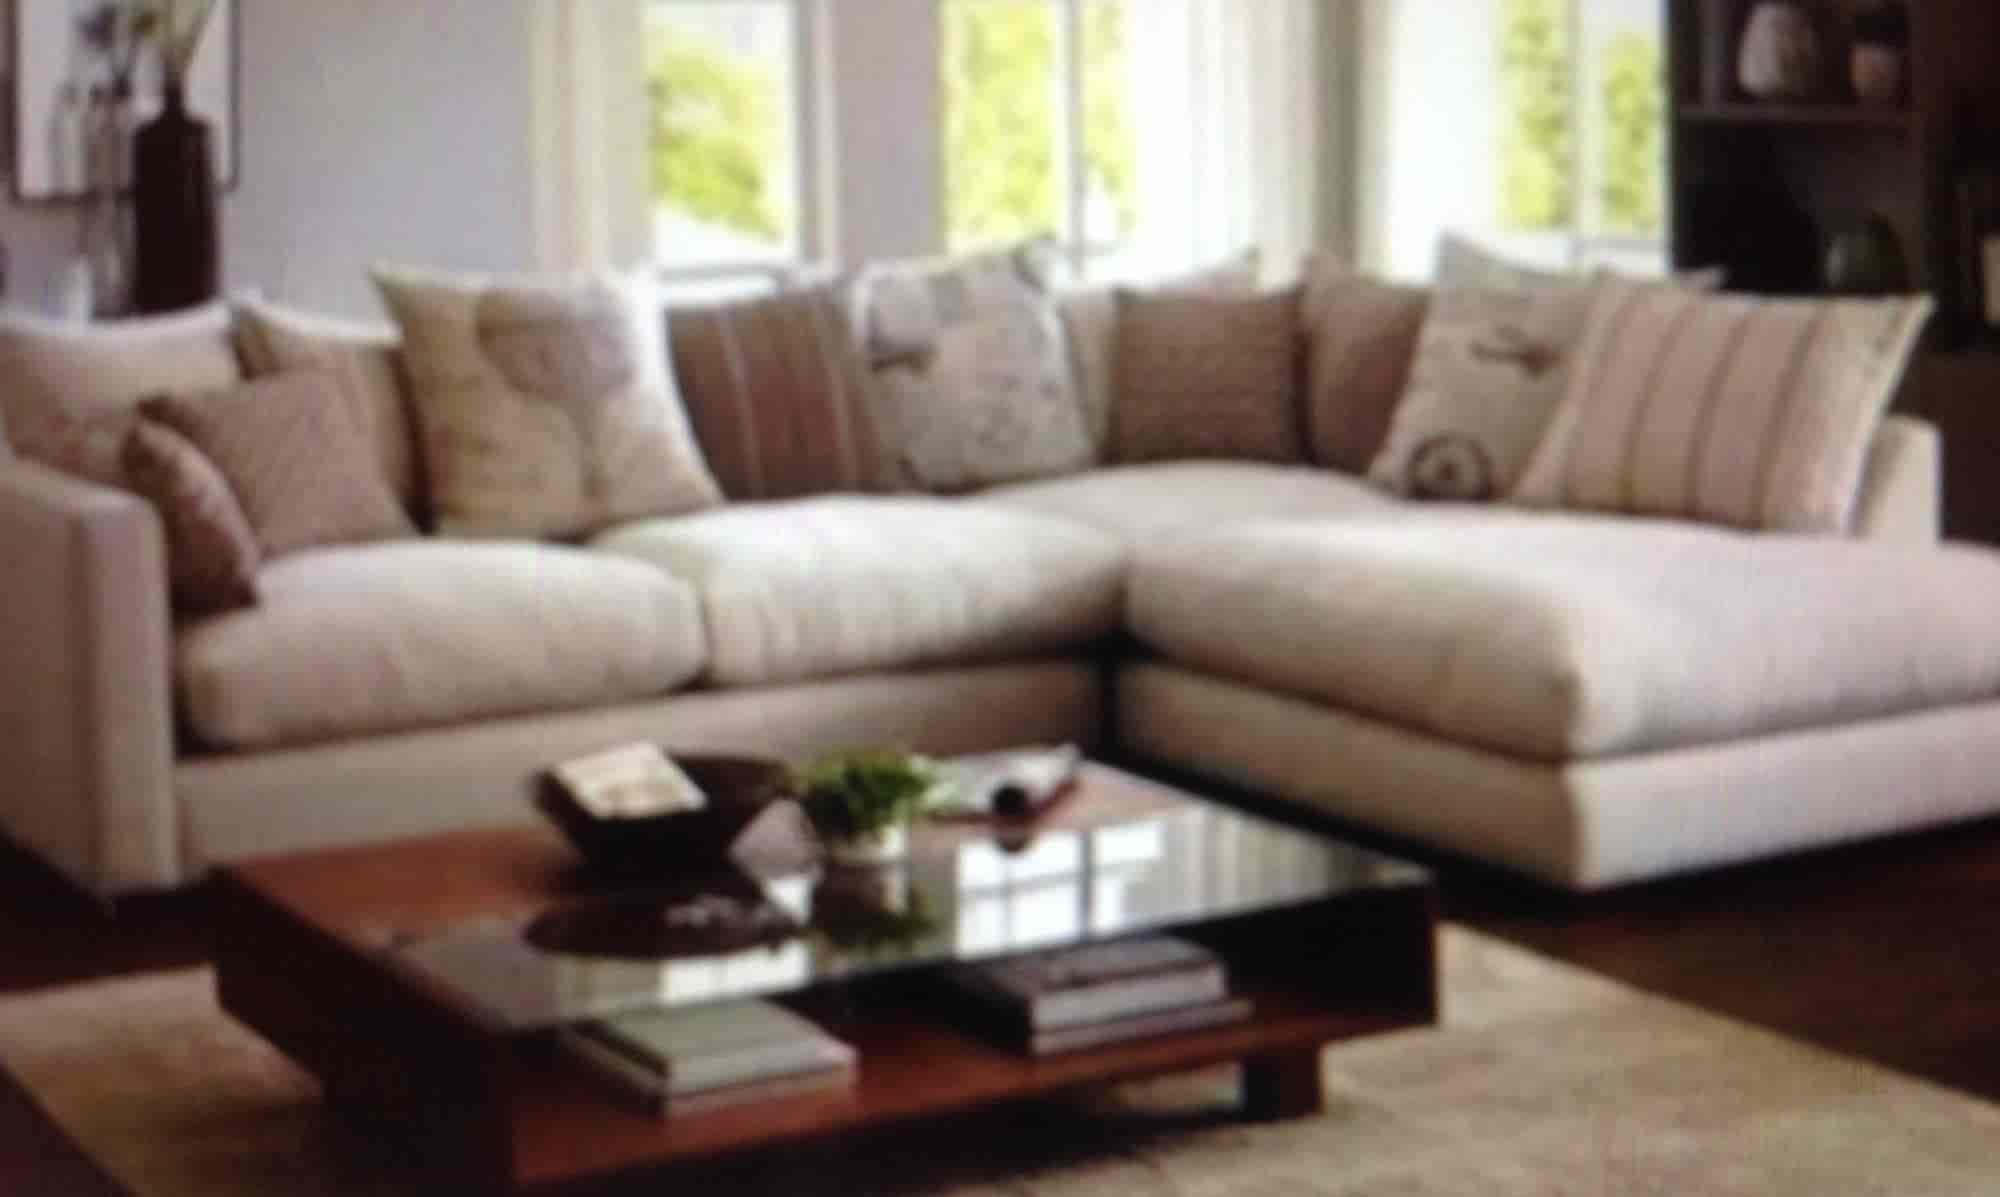 Rv Group Enterprises, Shampura - Furniture Manufacturers in